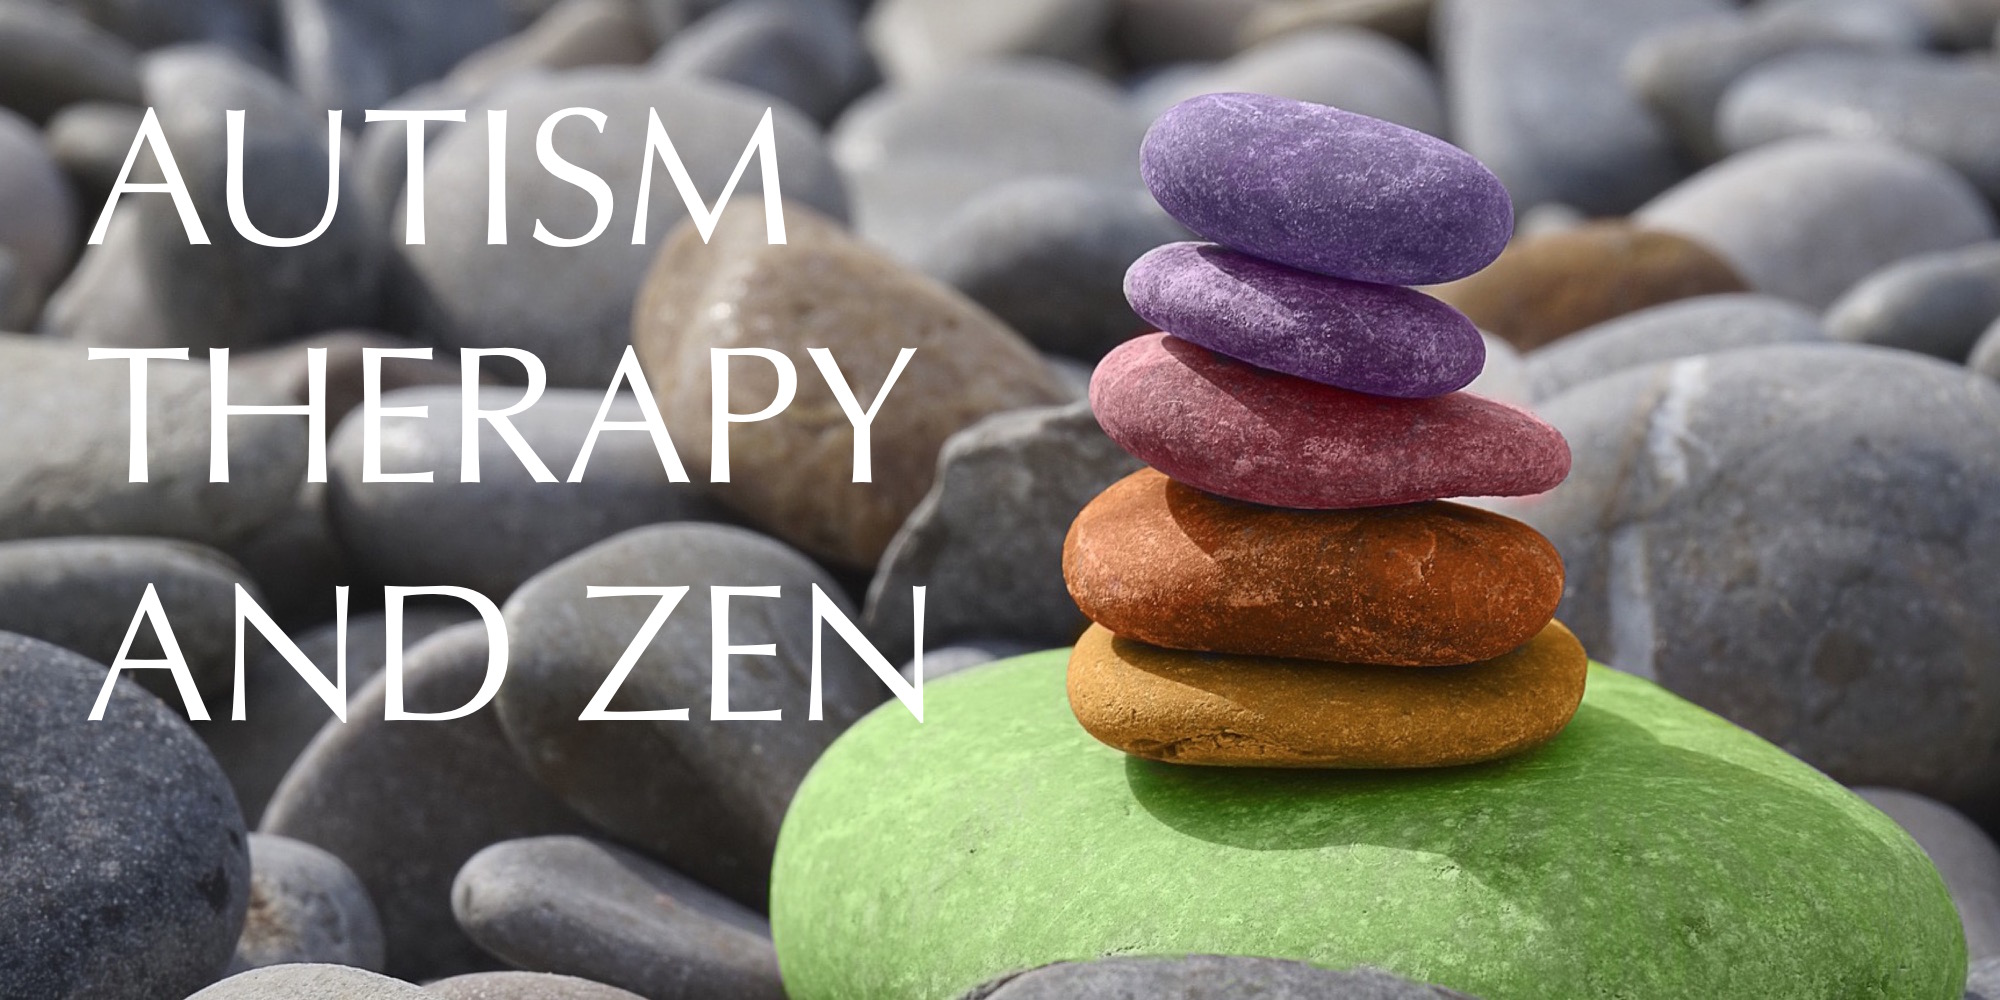 Autism Therapy and Zen